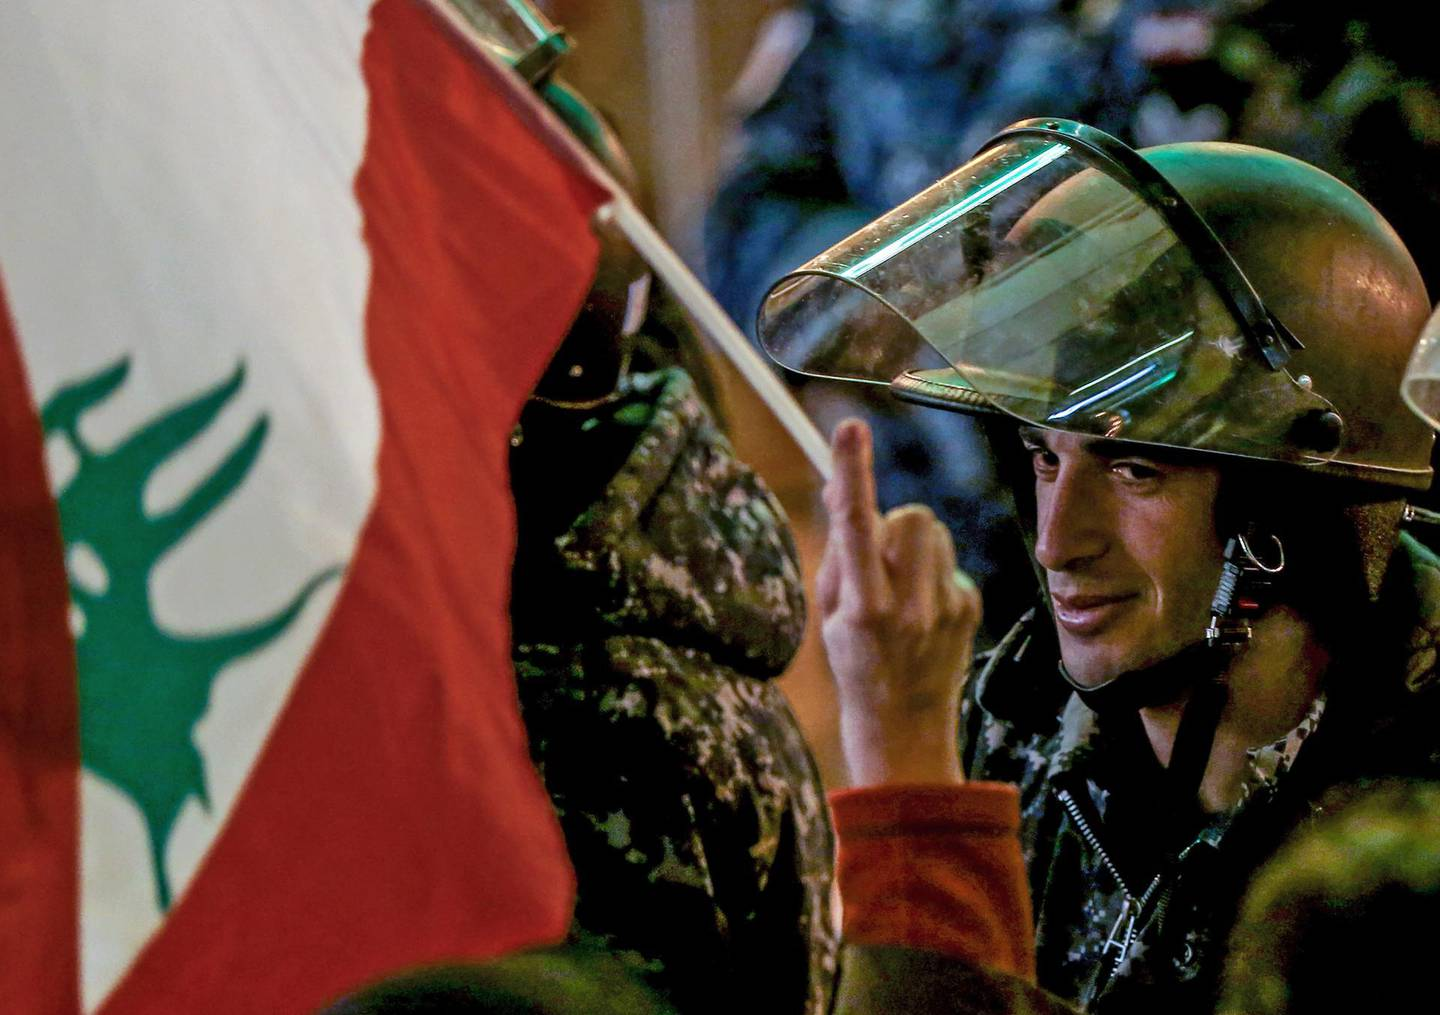 epa08055980 A protester waves the Lebanese flags in front of Lebanese policemen at a barricade, during an anti-government protest in front of the Parliament building in Beirut, Lebanon, 08 December 2019. Protests in Lebanon are continuing since it first erupted on 17 October, as protesters aim to apply pressure on the country's political leaders to over what they view as a lack of progress following the prime minister's resignation on 29 October,  demand to speed up the process to appointment of a new prime minister, without the corrupt political class. Lebanese President Michel Aoun called for formal consultations on 09 December with lawmakers to designate a new prime minister, but it was canceled after the candidate Samir Khatib announced his withdrawal from the candidacy, after his visit Dar Al Fatwa, as said to media that, the country's top Sunni religious authority told him the community supports resigned prime minister Saad Hariri to take back the post.  EPA/NABIL MOUNZER